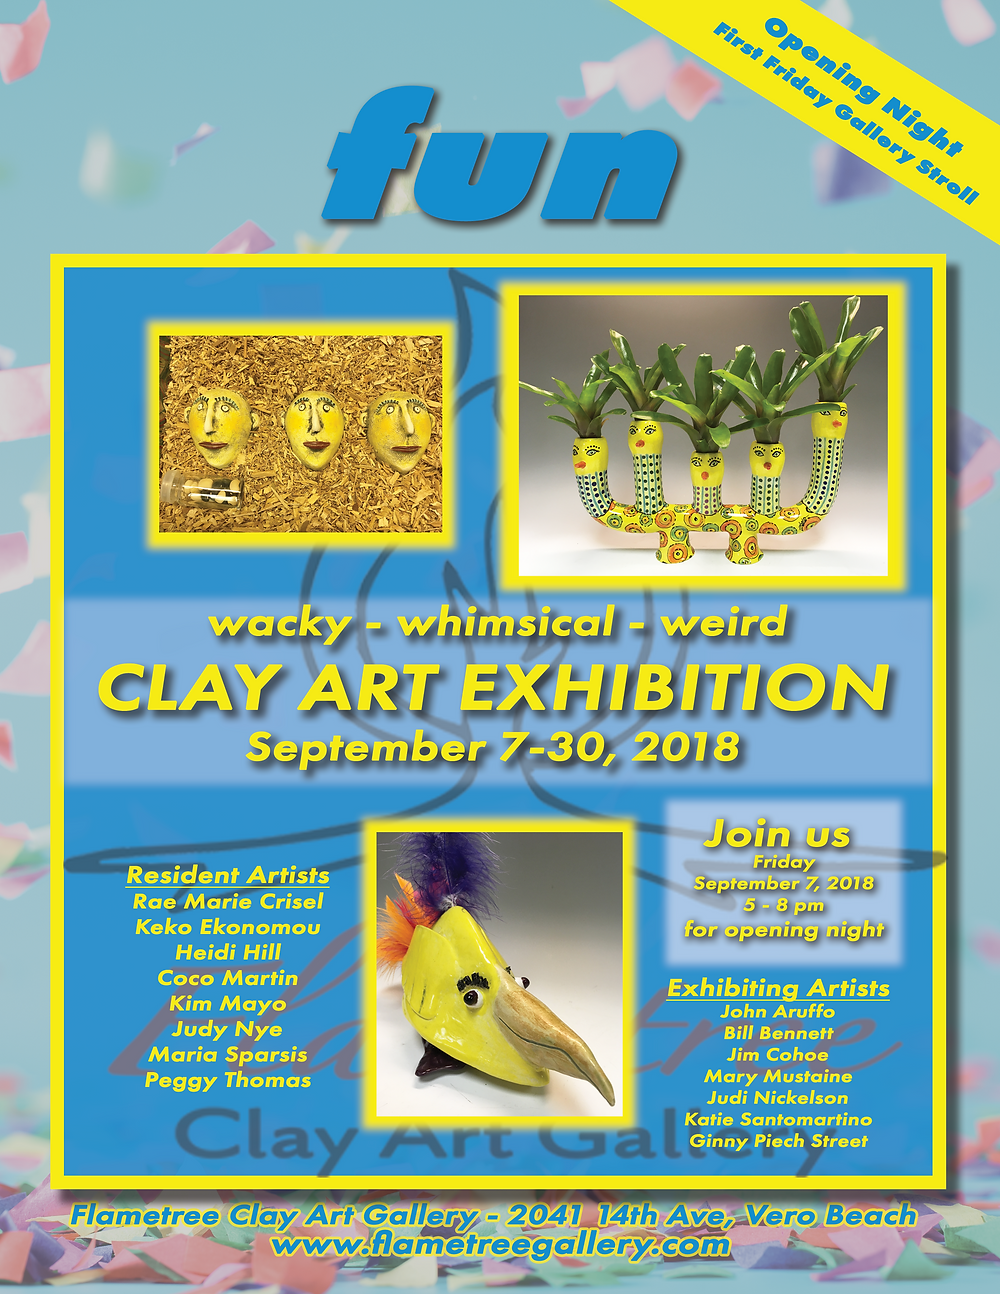 Flametree Clay Art Gallery - September 2018 Exhibition - fun